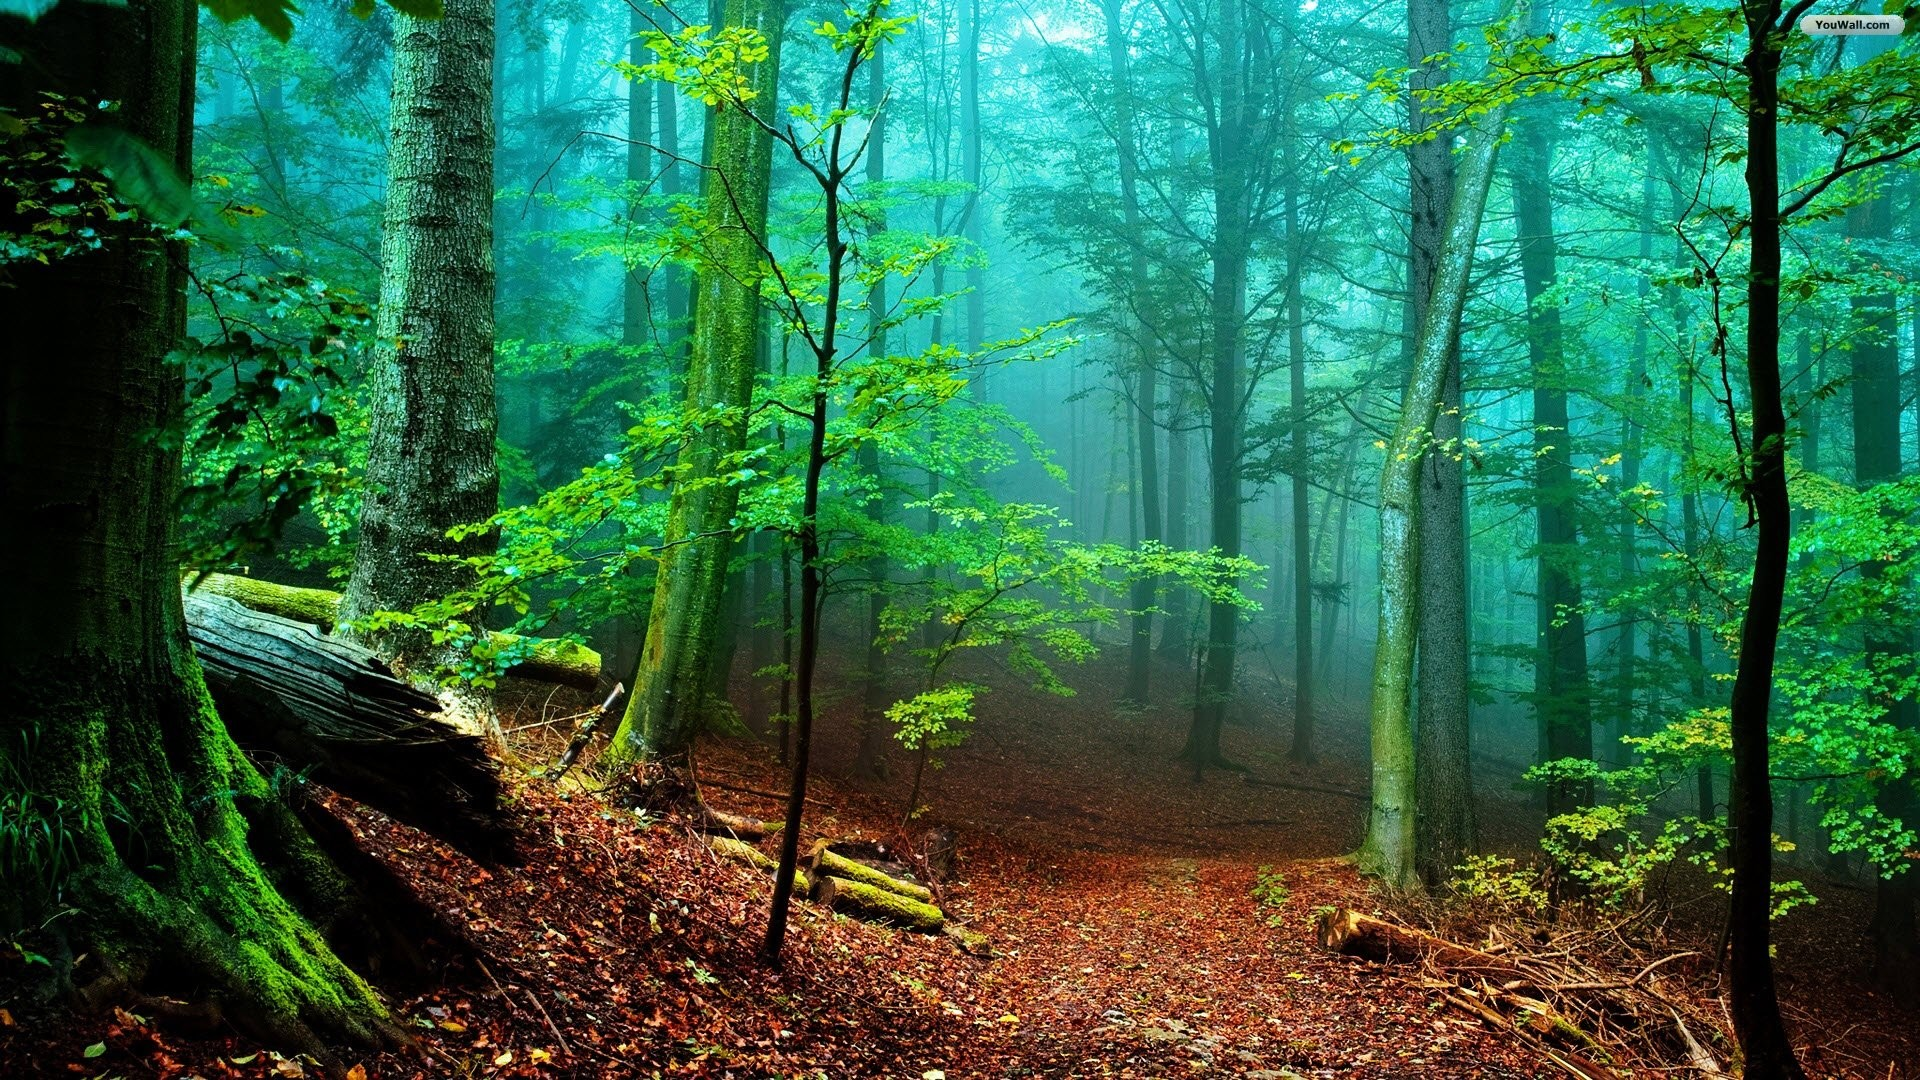 1920x1080 YouWall - Forest Fog Wallpaper - wallpaper,wallpapers,free wallpaper .